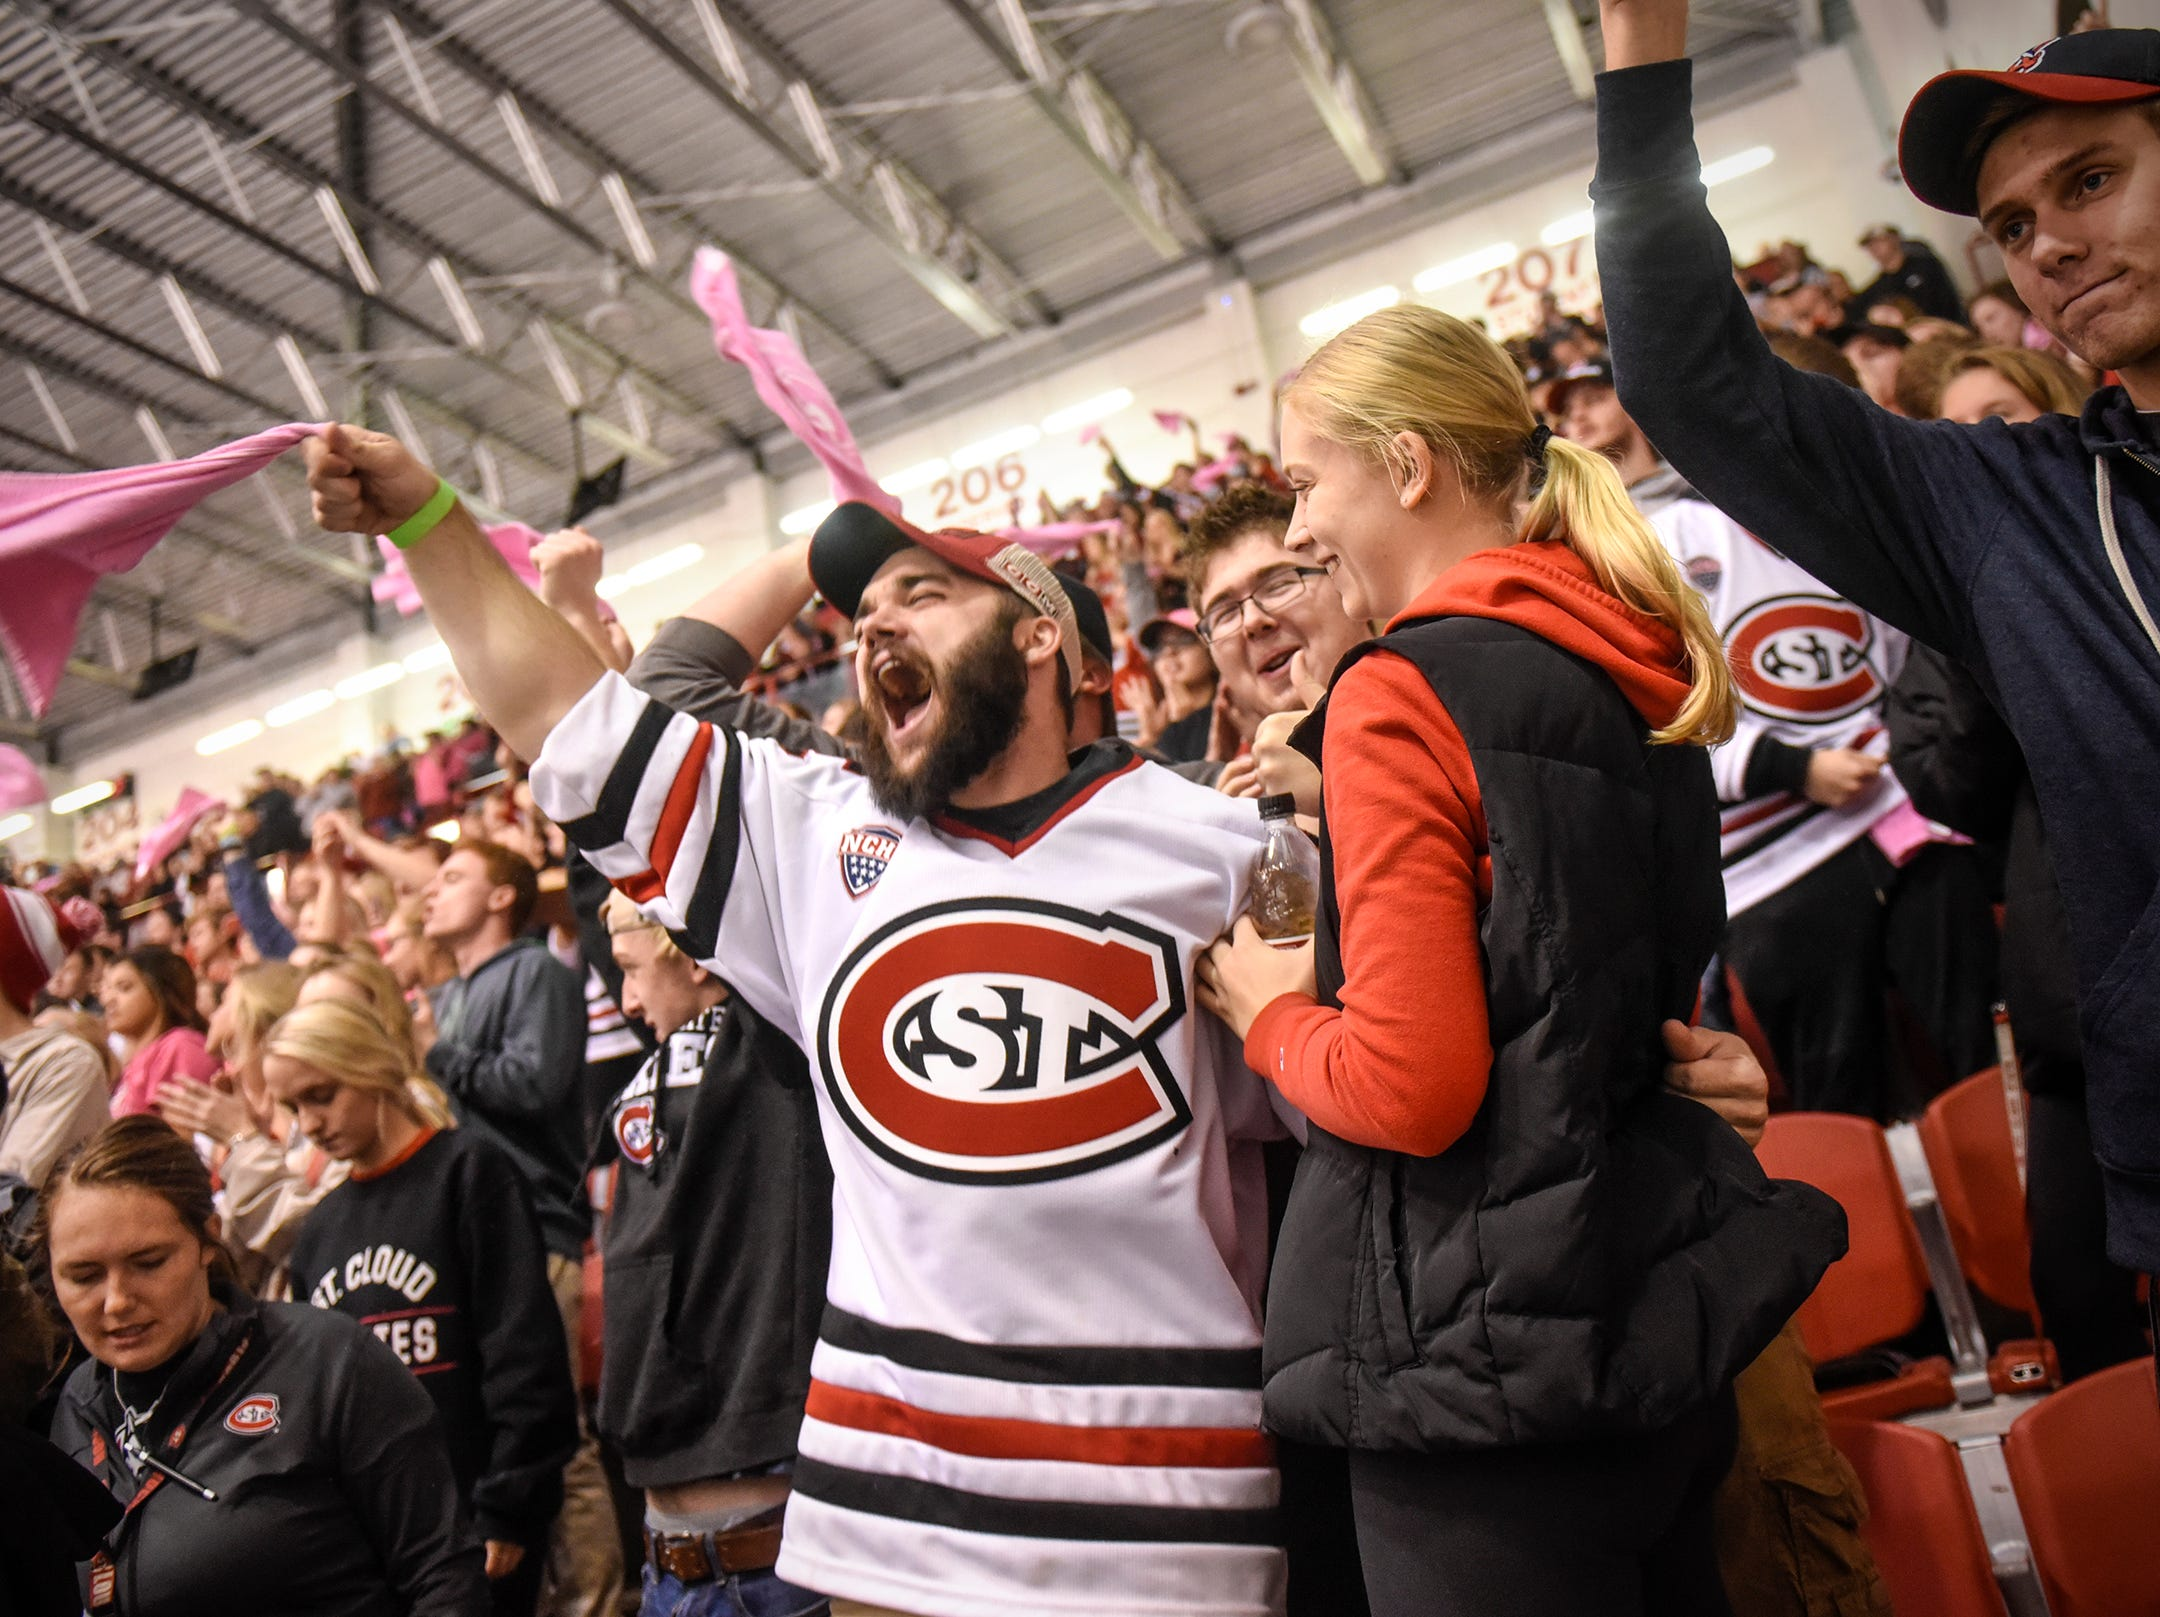 St. Cloud State fans celebrate a goal during the first period of the Friday, Oct. 19, game against Northern Michigan at the Herb Brooks National Hockey Center in St. Cloud.